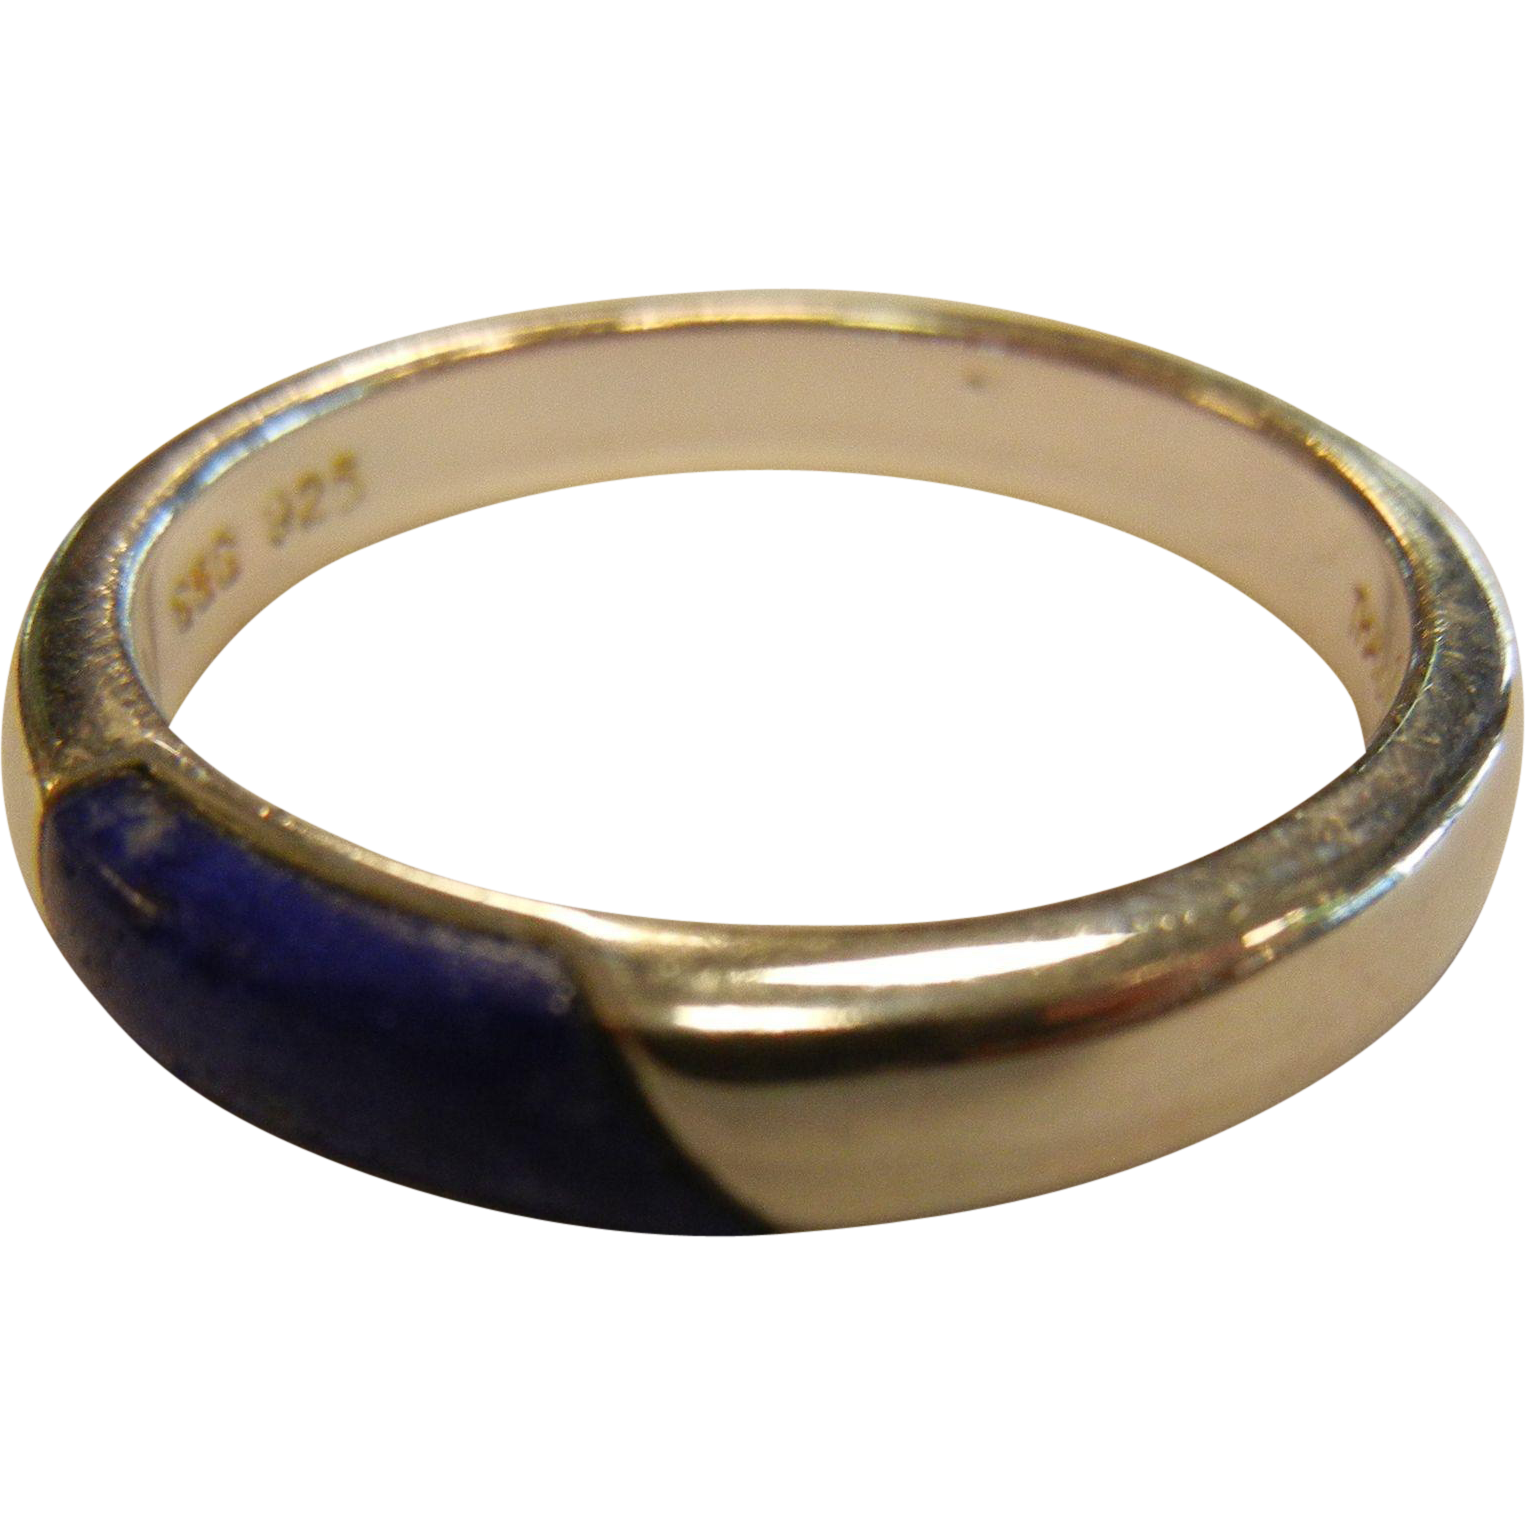 Signed 925 Sterling Silver Ring w/ Inlaid Natural Lapis Lazuli